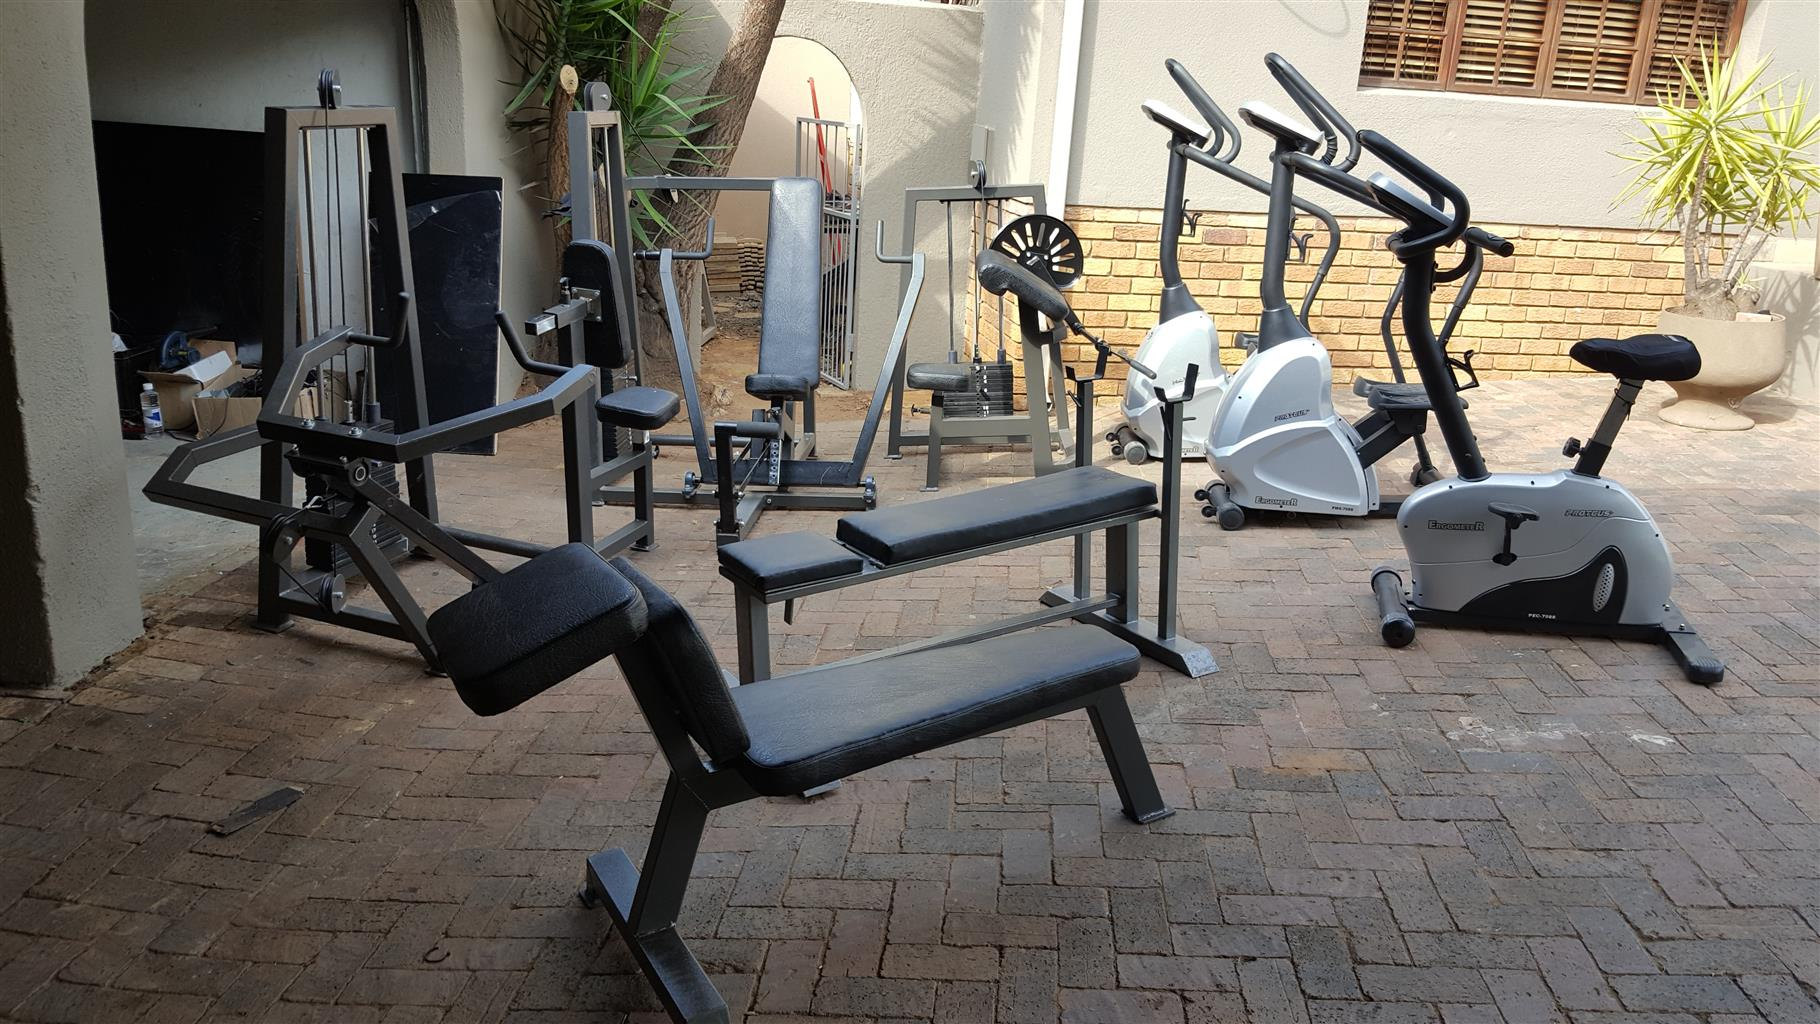 selectorised and cardio equipment for sale